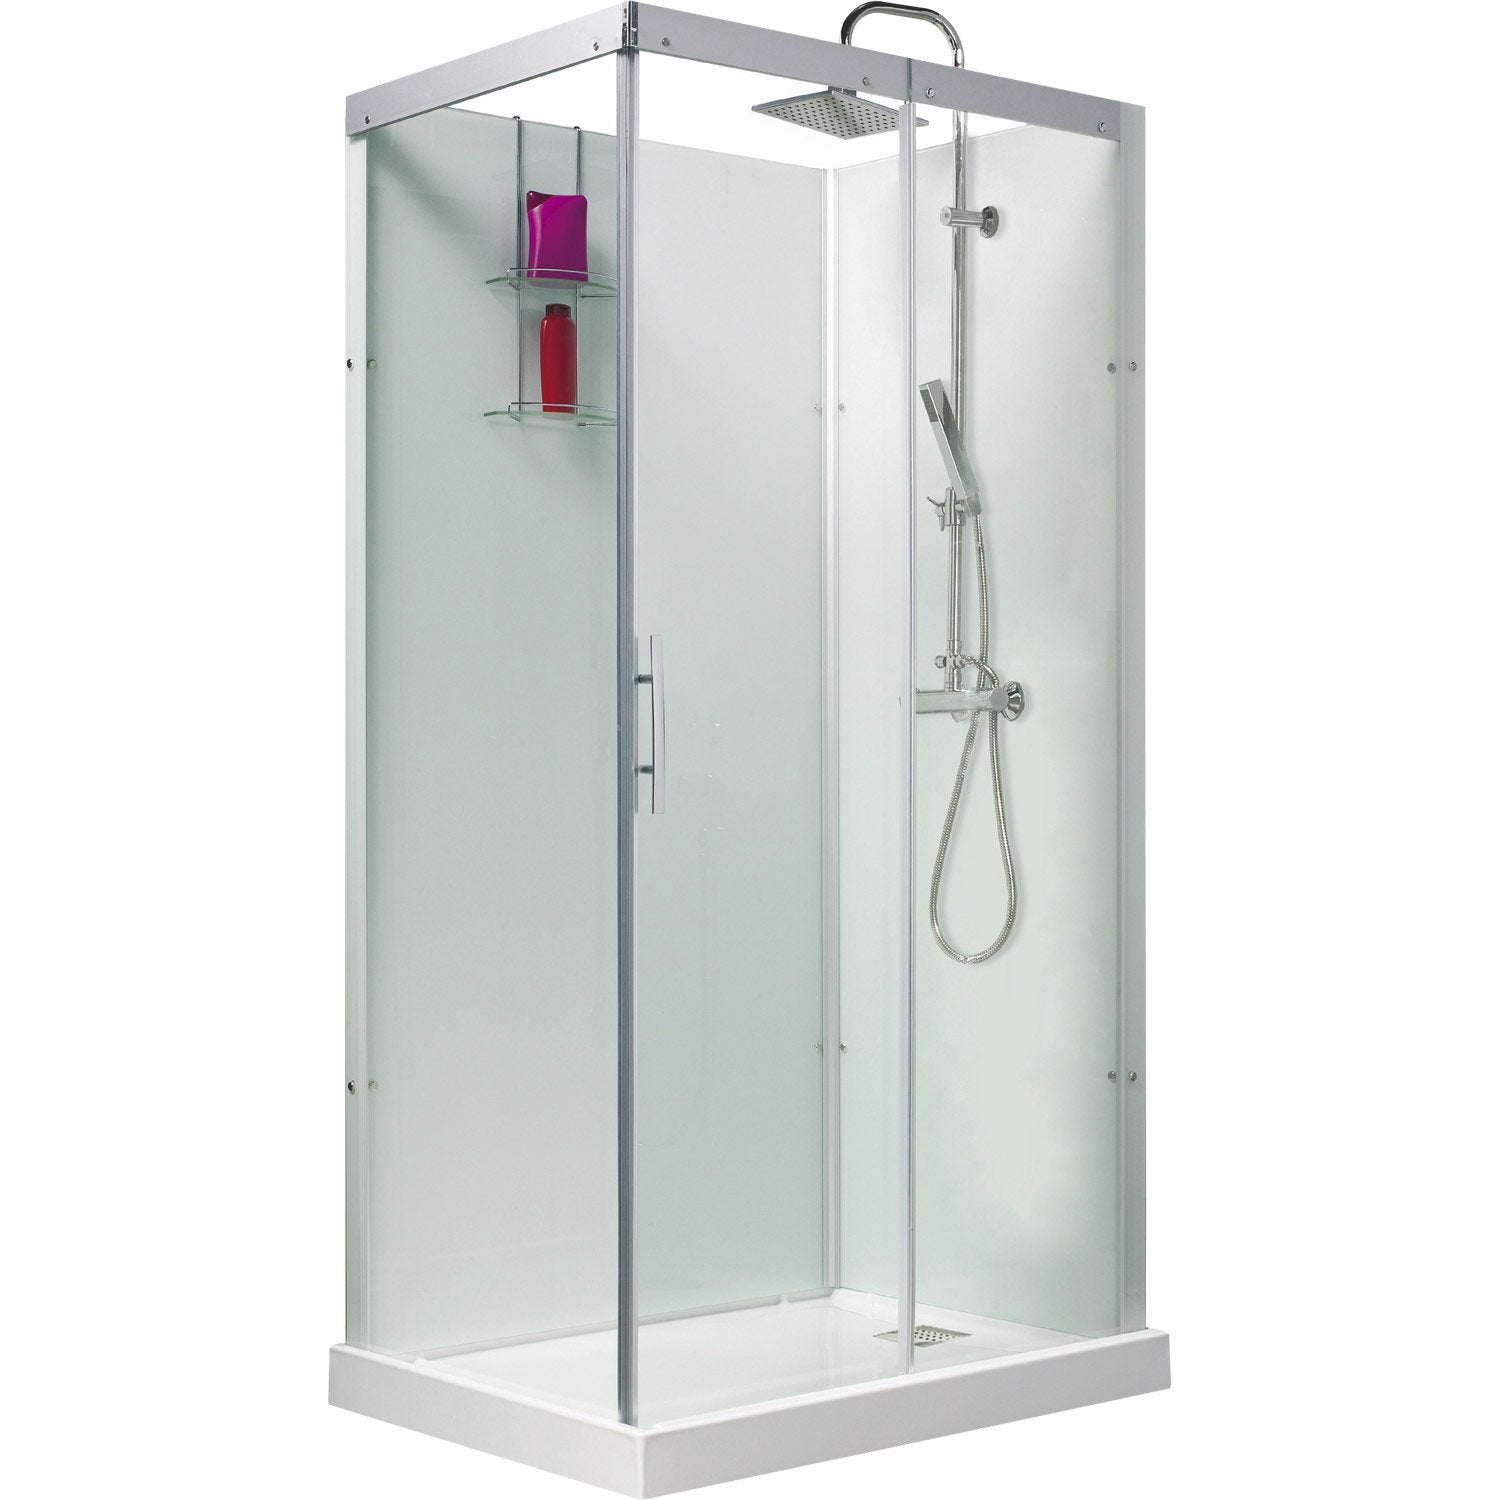 Cabine de douche rectangulaire 110x80 cm thalaglass 2 for Douche chez leroy merlin